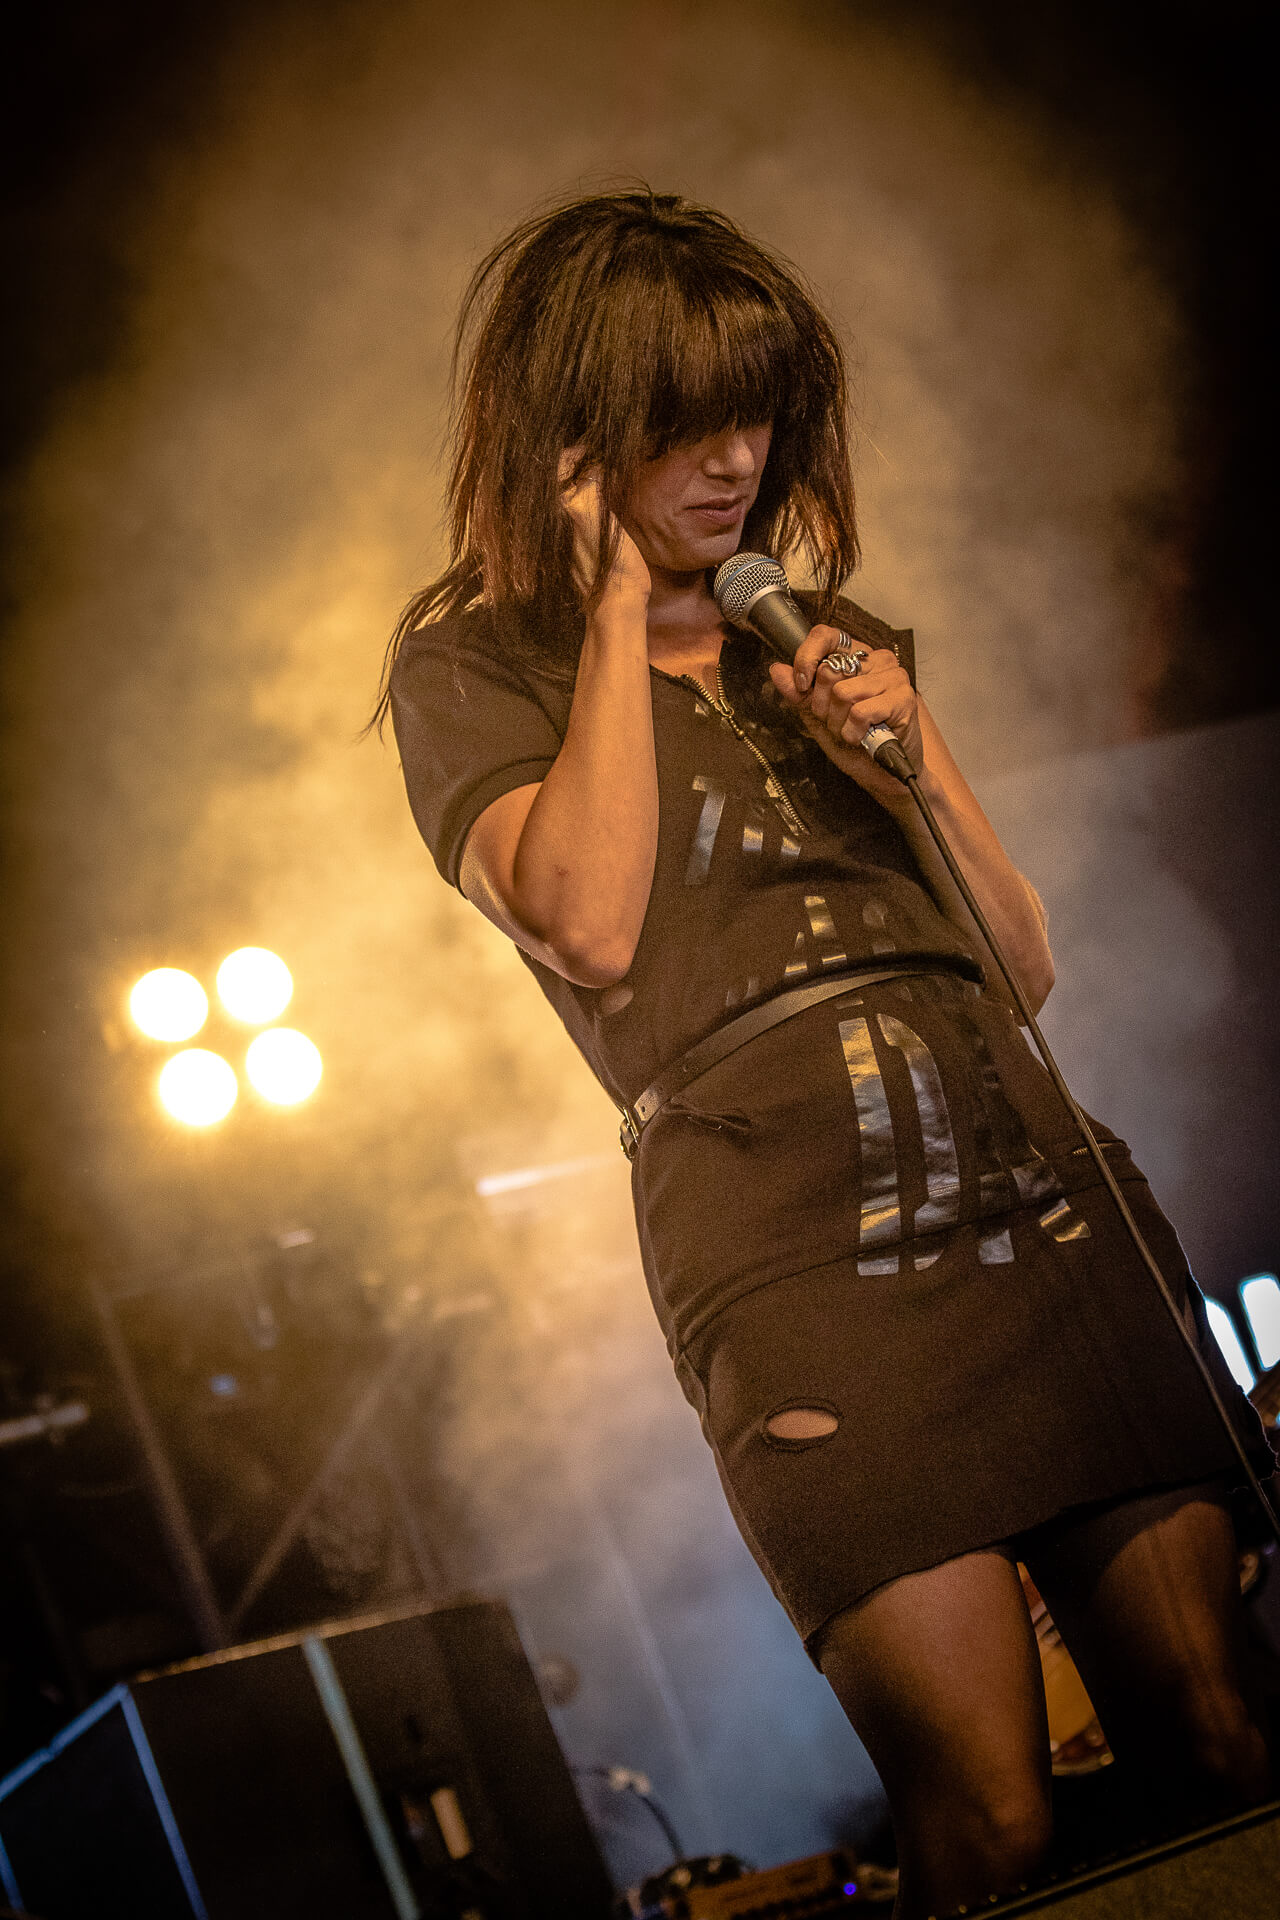 A colour 3/4 length body shot photograph, taken at Lakefest 2017, of Imelda May (in a ripped short black dress) adjusting her ear piece whilst on stage.